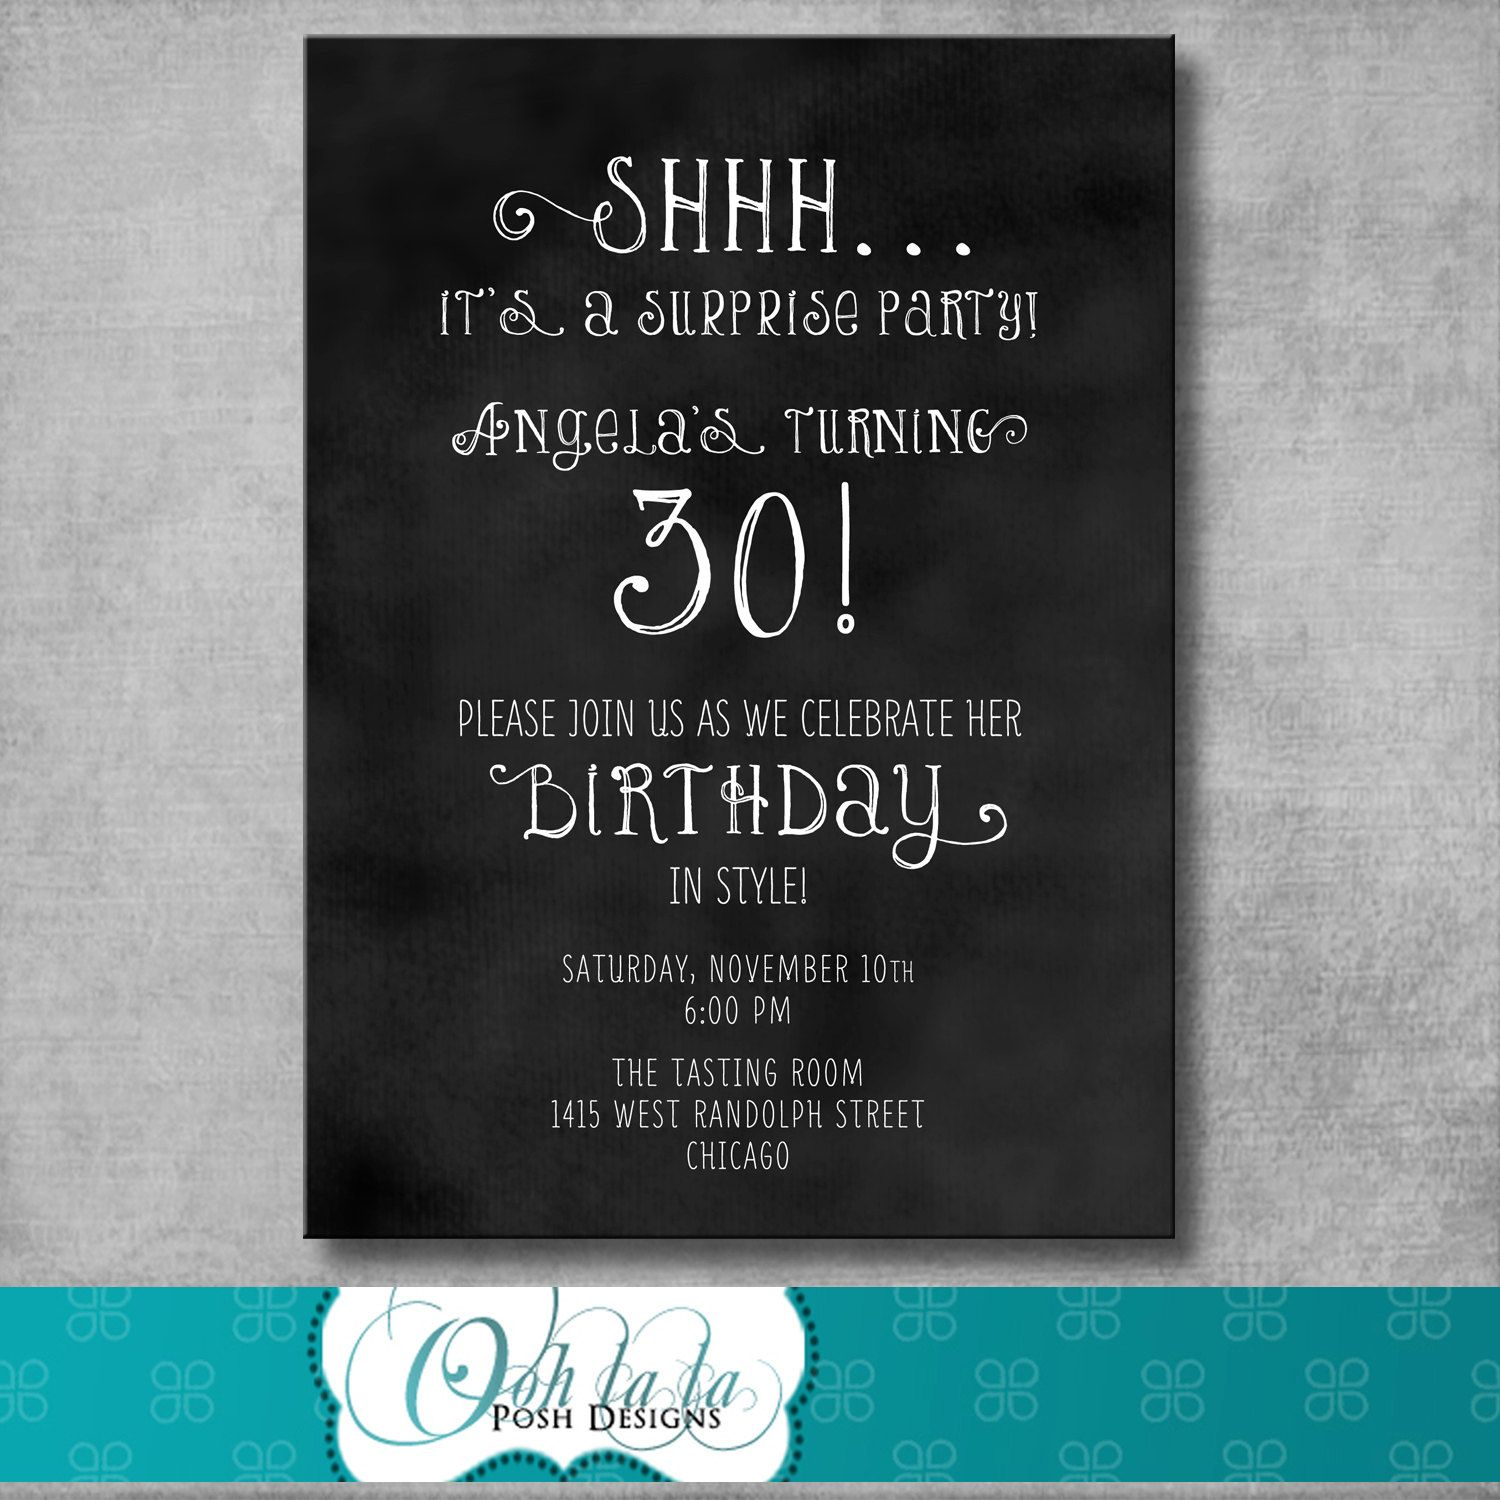 adults only birthday invitation wording ; Invitation-wording-for-adults-only-party-to-get-ideas-how-to-make-your-own-party-invitation-design-15